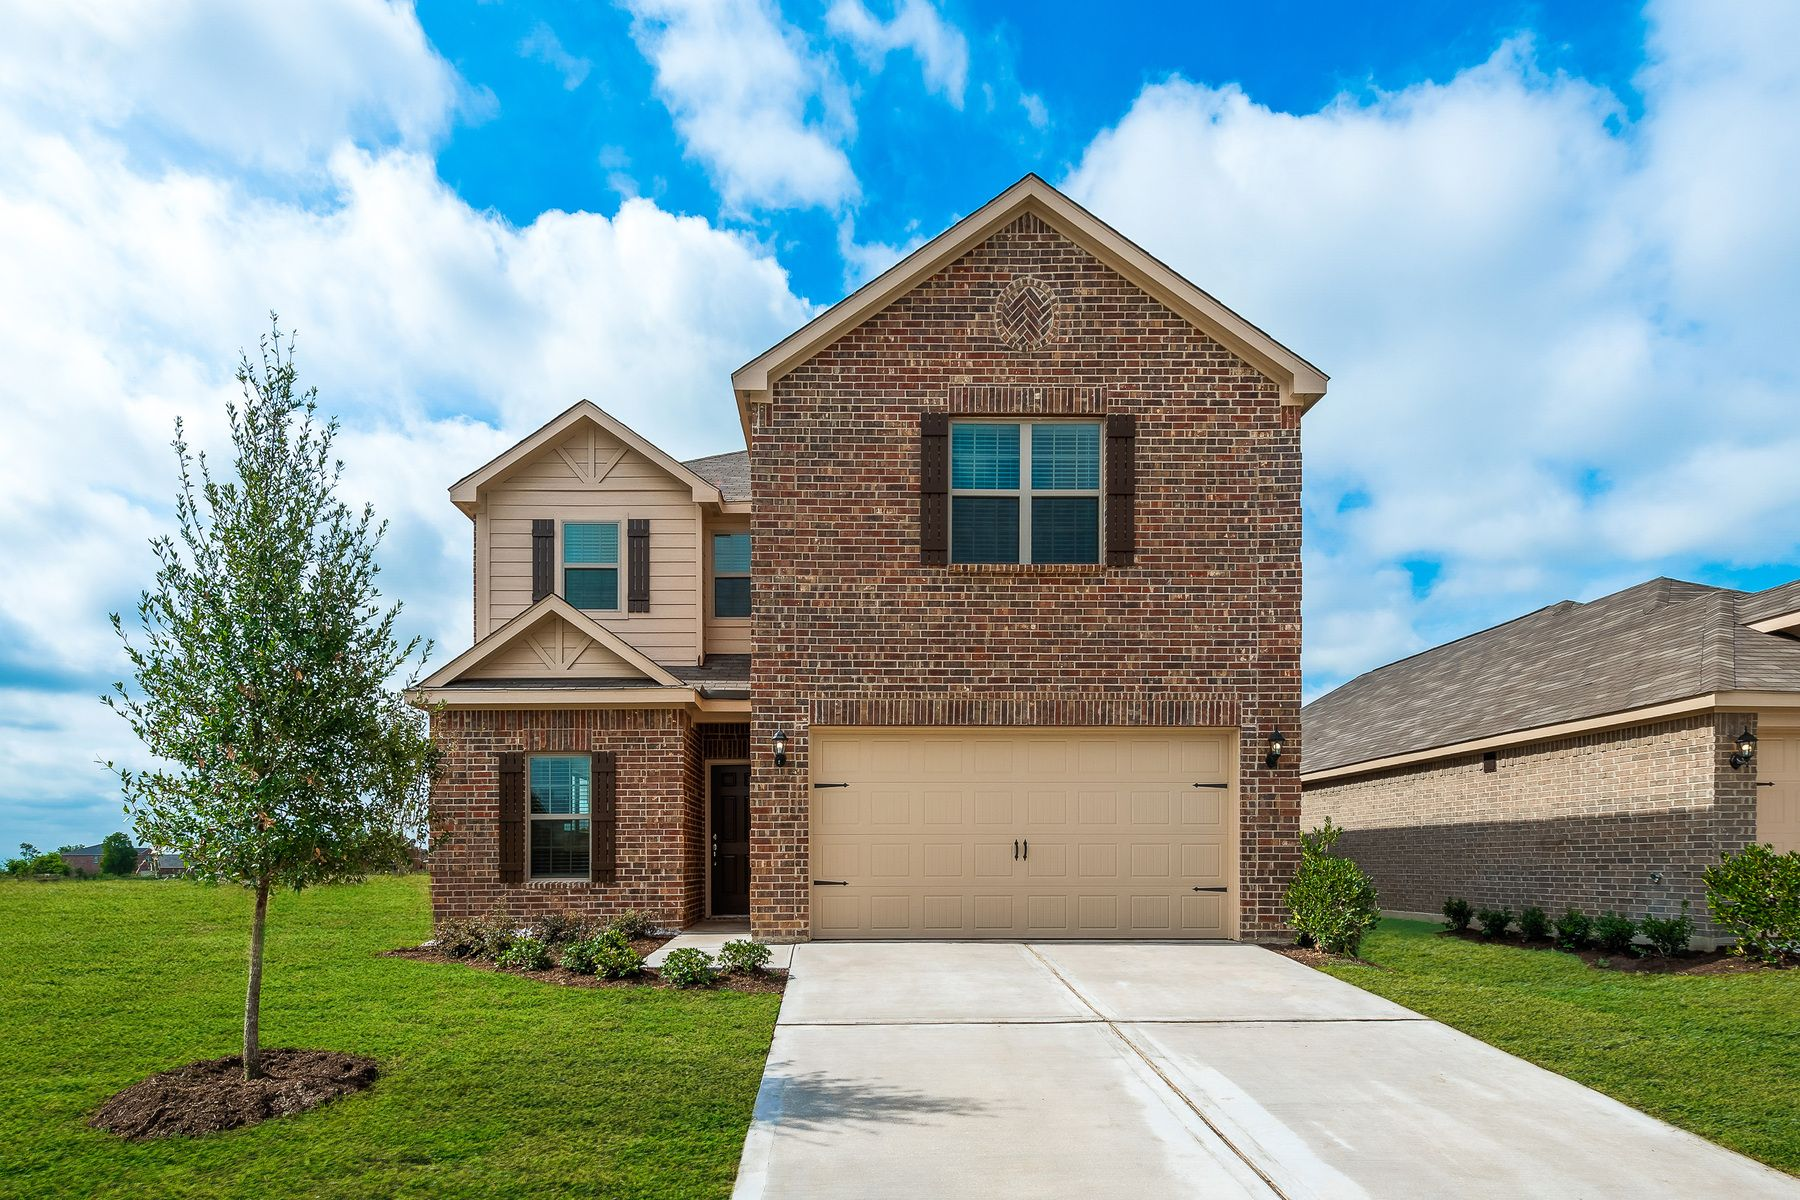 The Driftwood by LGI Homes:The Driftwood is a spacious, two-story home at Willowwood!